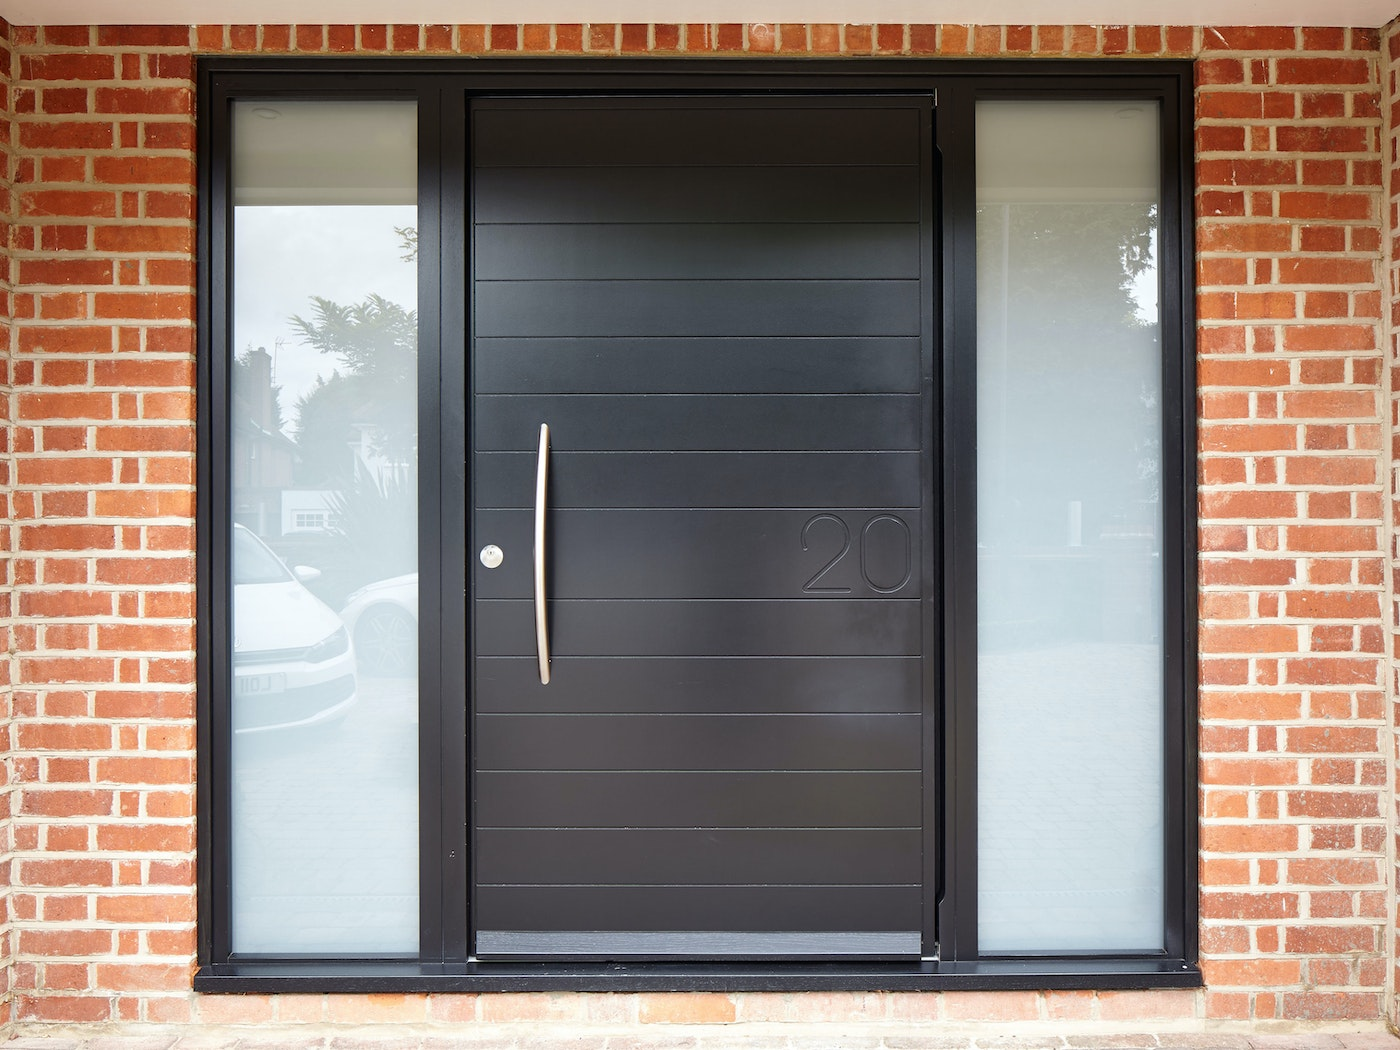 The Numero door design features the house number